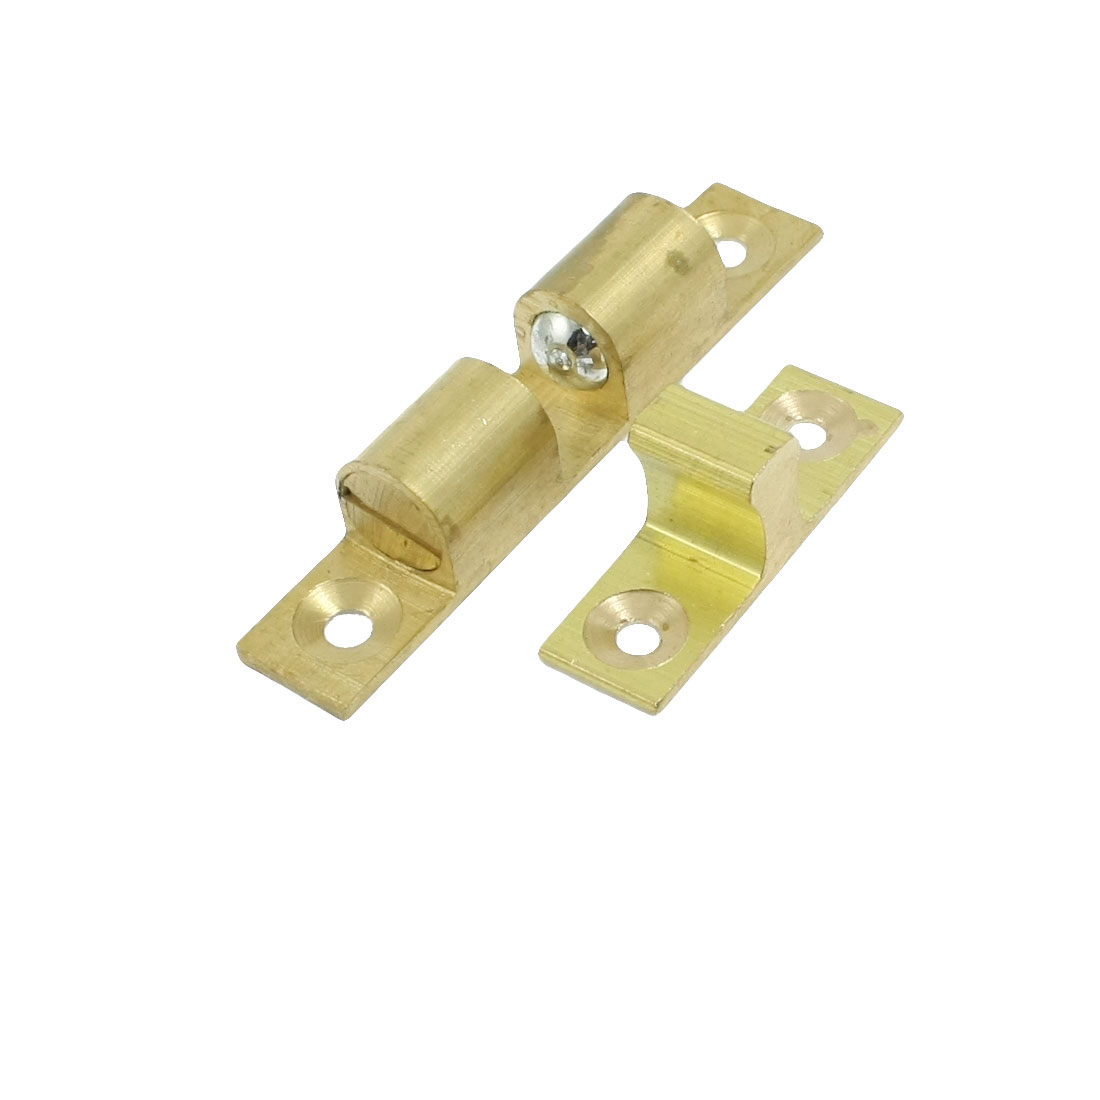 Home Door Latch Double Ball Catch 60mm Length Gold Tone